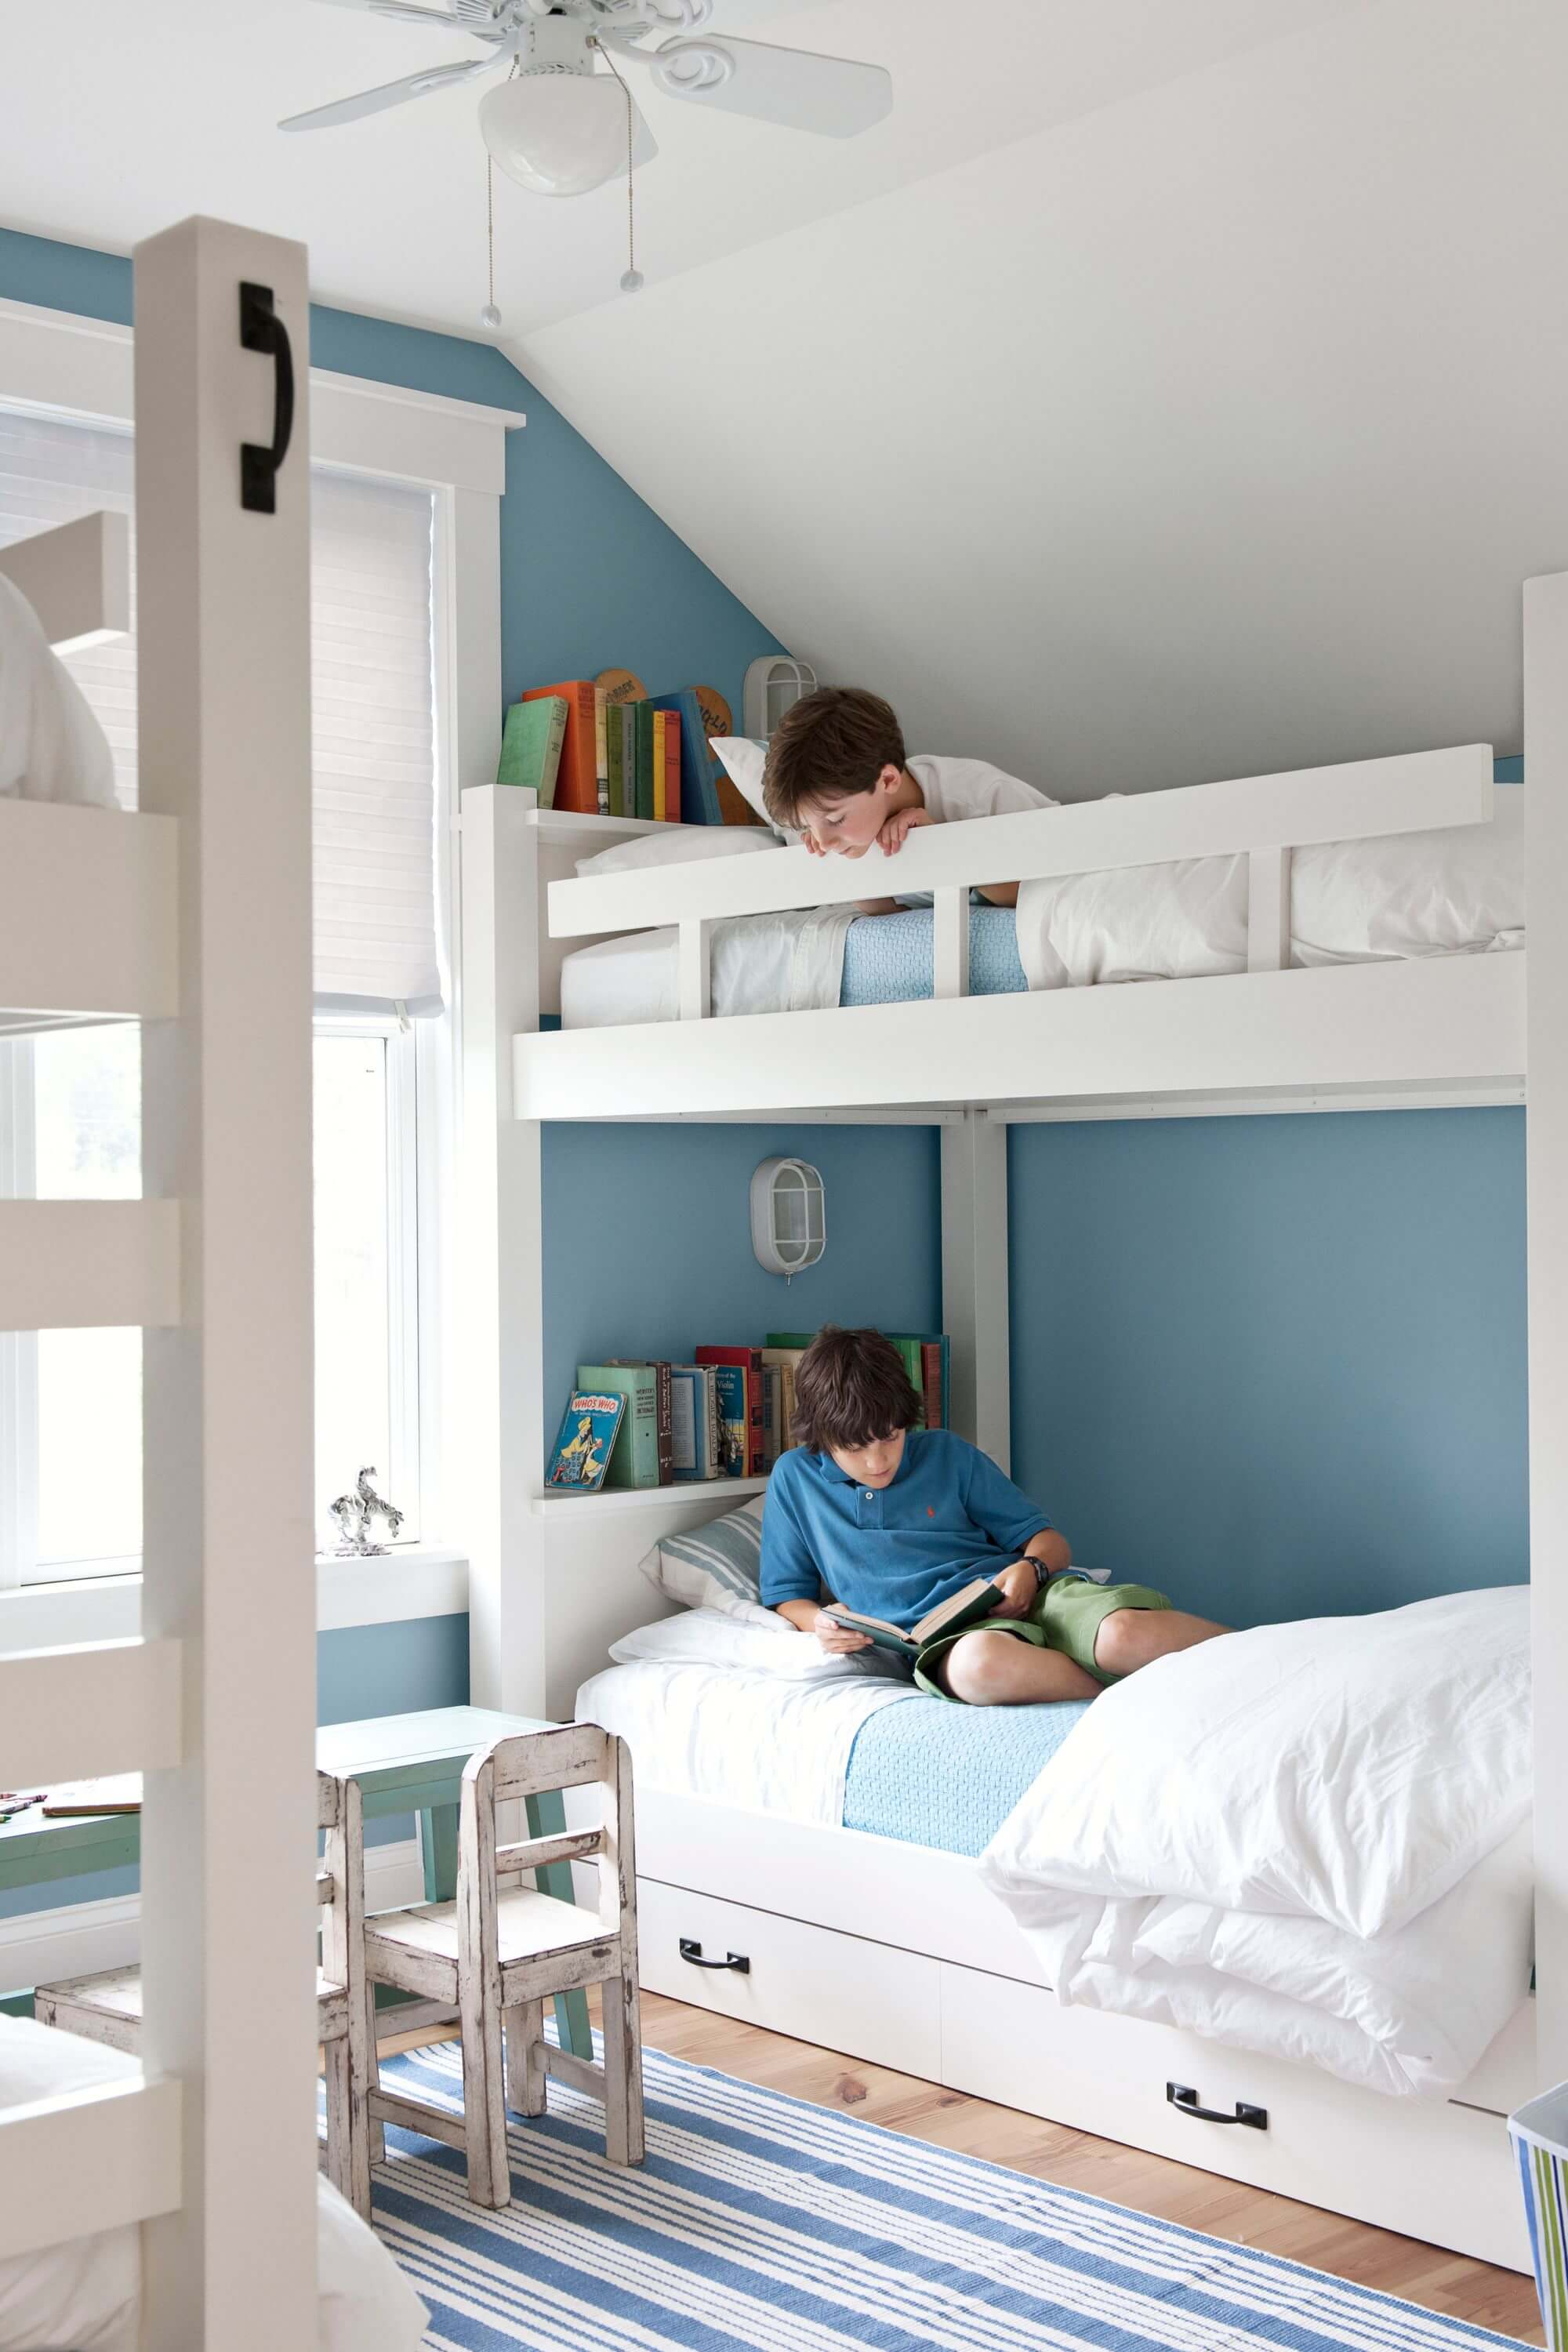 27 Kids Bedrooms Ideas That'll Let Them Explore Their ...